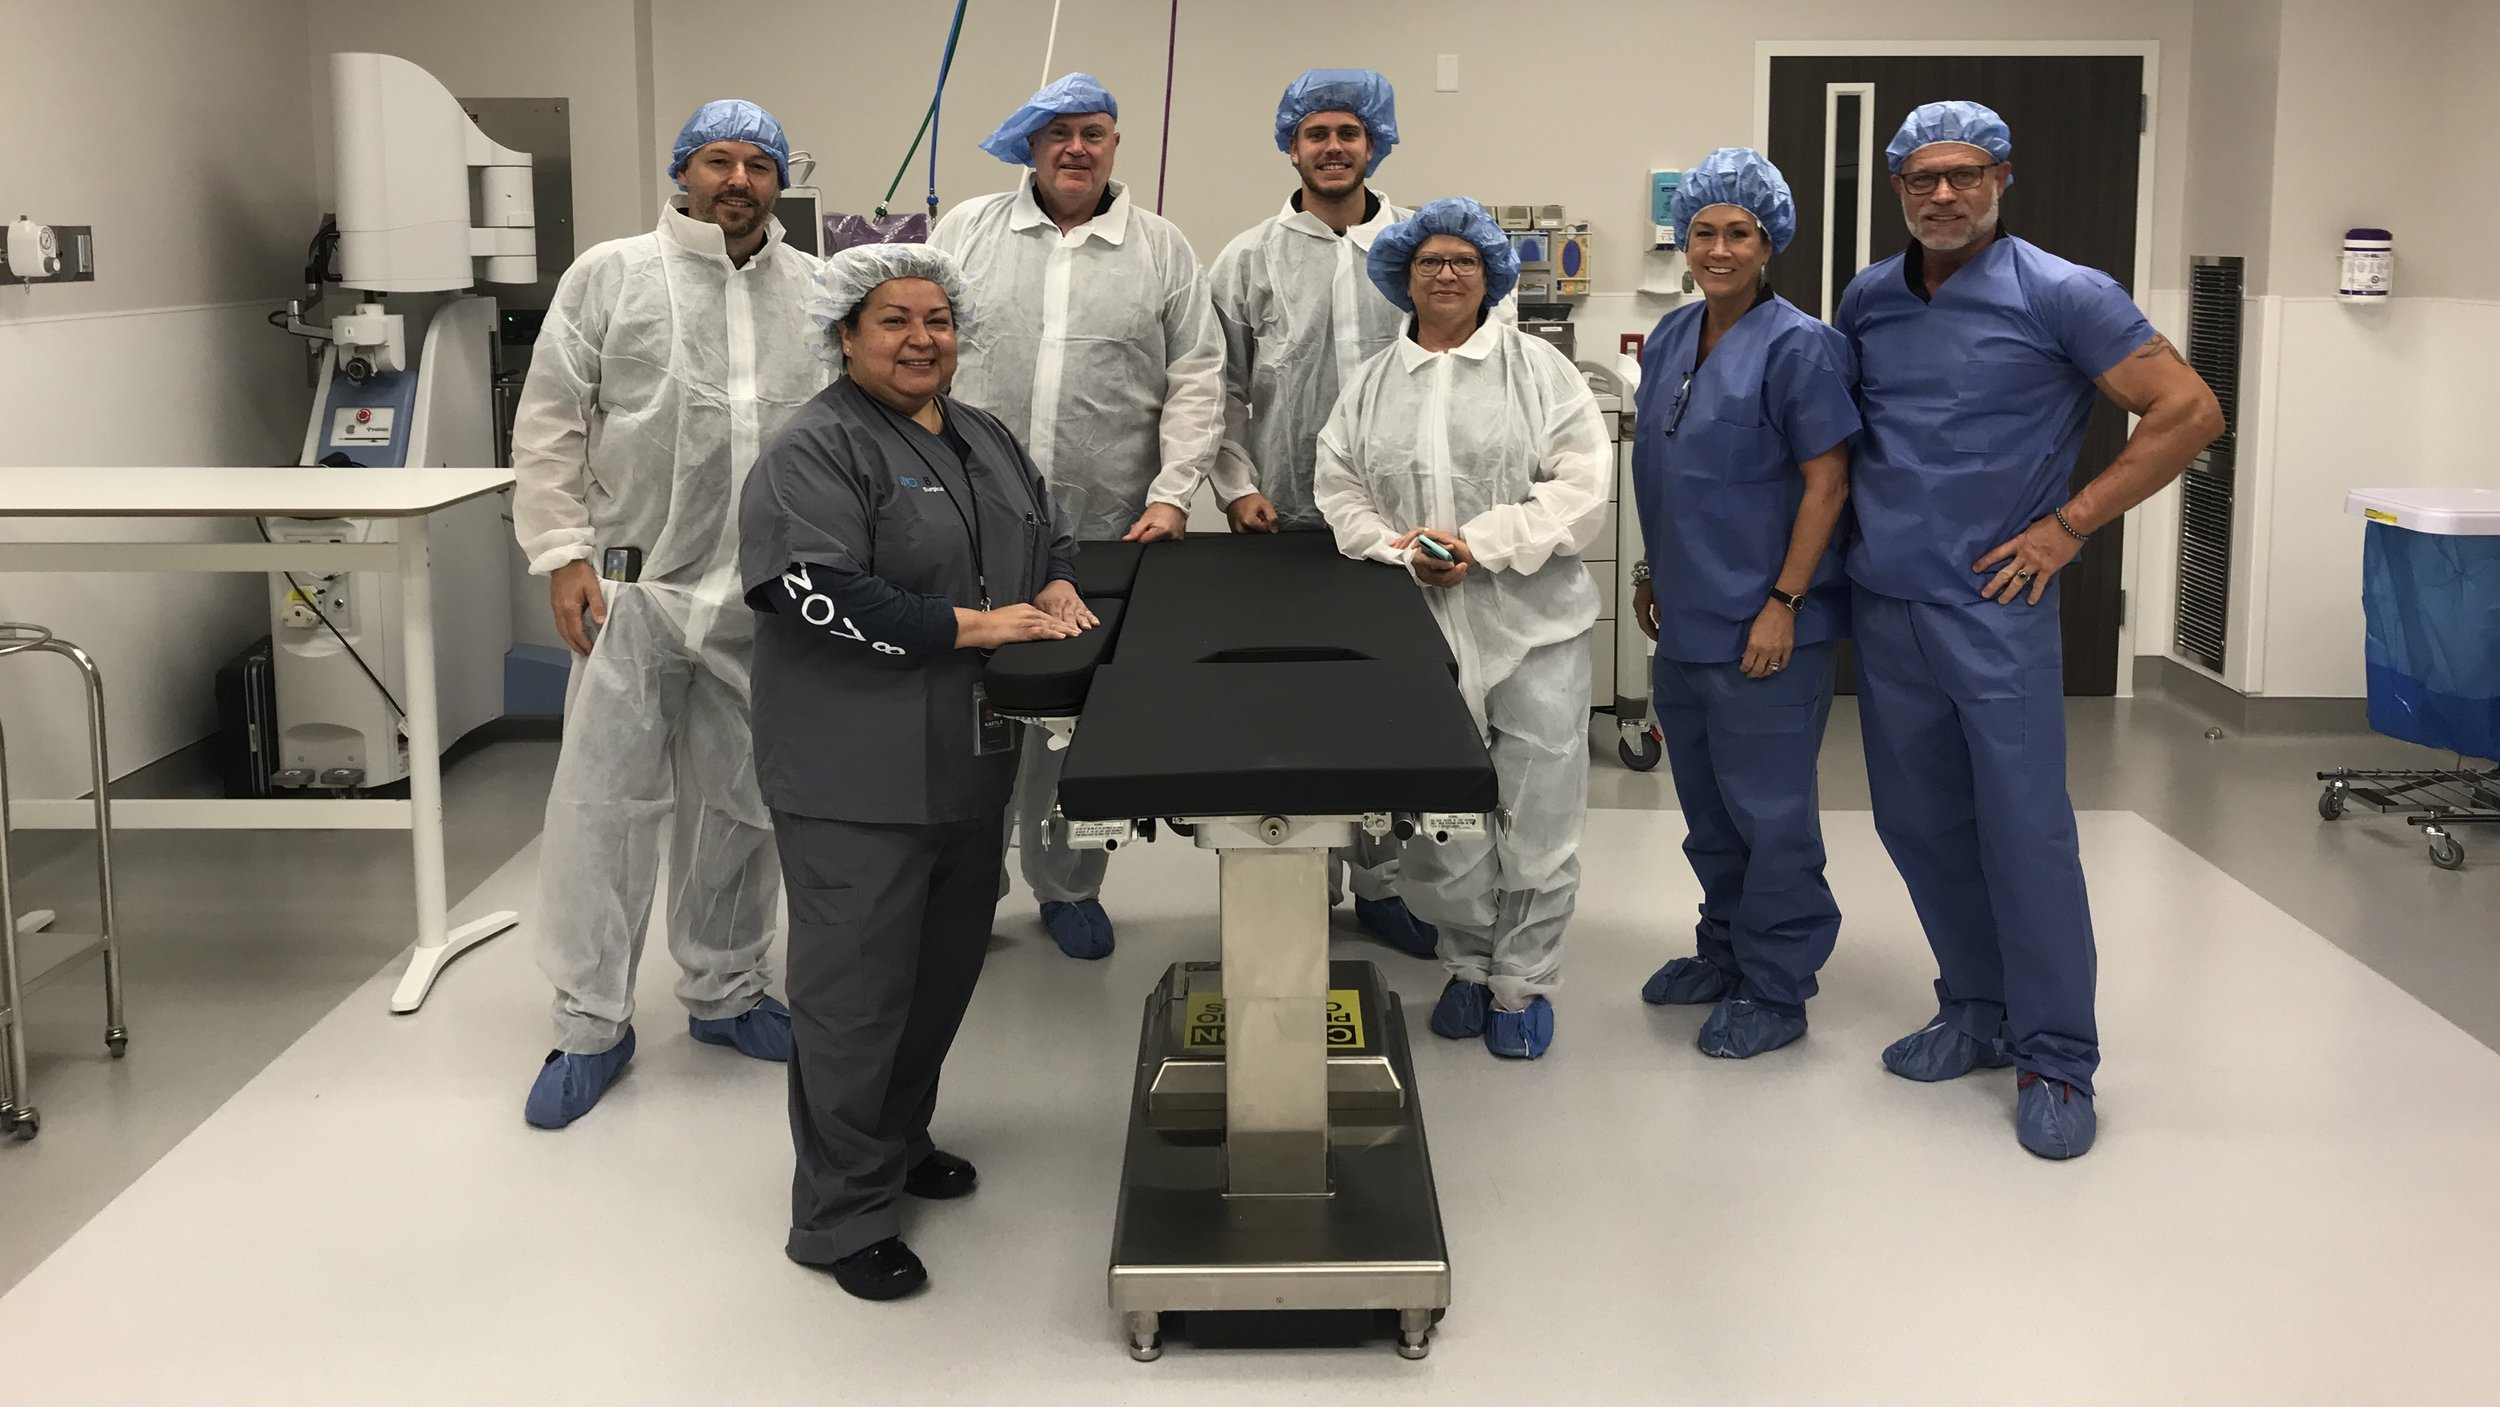 Innovative Orthopedic Technologies (IOT) team members shown in an INOV8 Surgical operating room, part of INOV8 Orthopedics. The facility uses our ARCH and MPXRAYCER products and is one of the leading surgery centers in the Houston, Texas area.